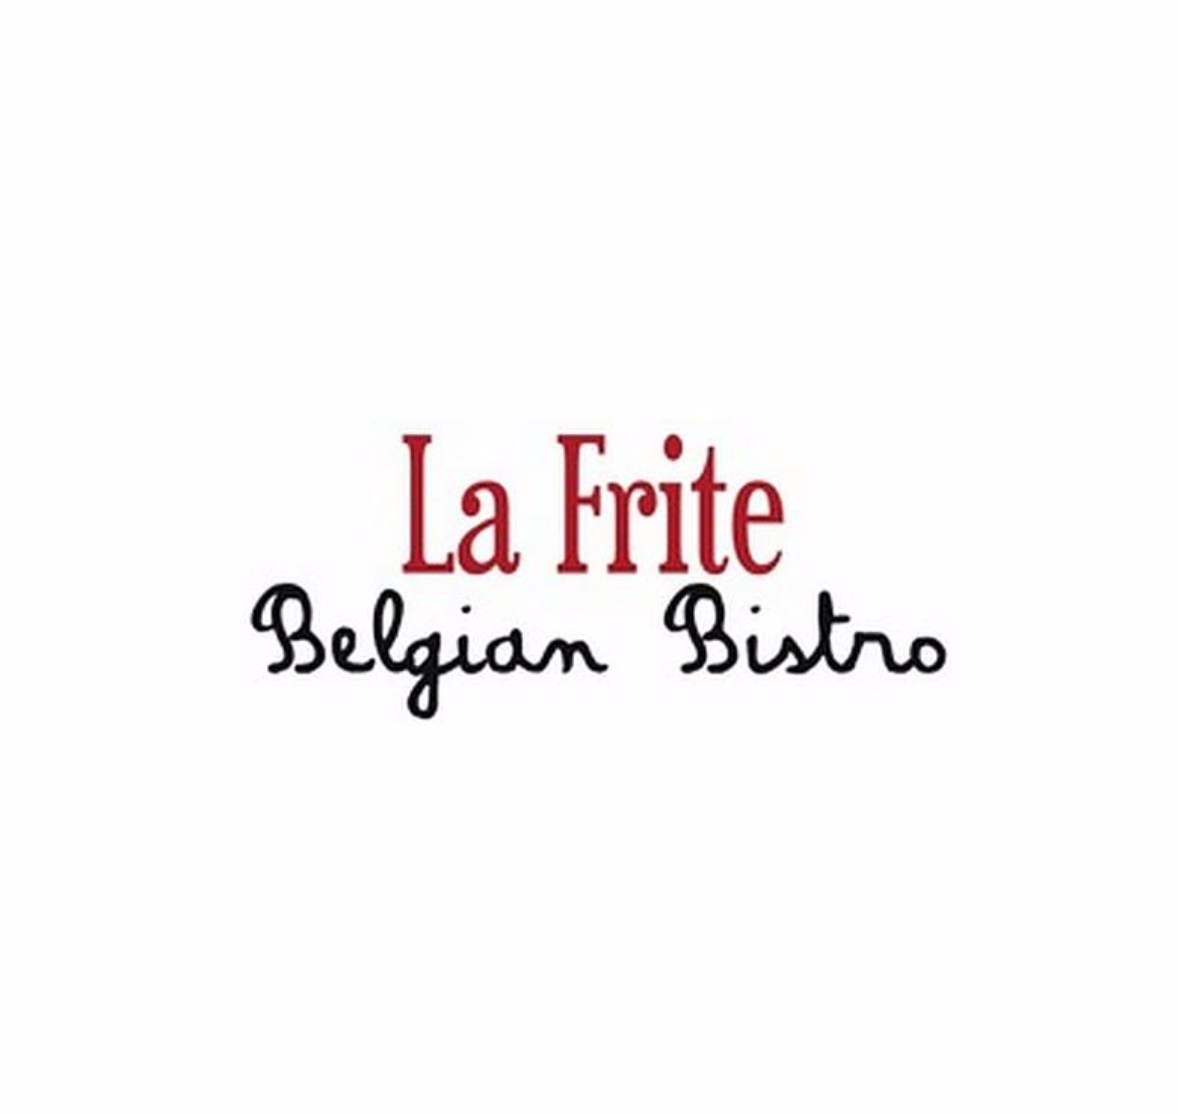 La Frite Belgian Bistro , Lunch & Dinner  728 S Alamo St, San Antonio, 78209  P 210-224-7555    La Frite's Lunch Menu      Make a Reservation on OpenTable